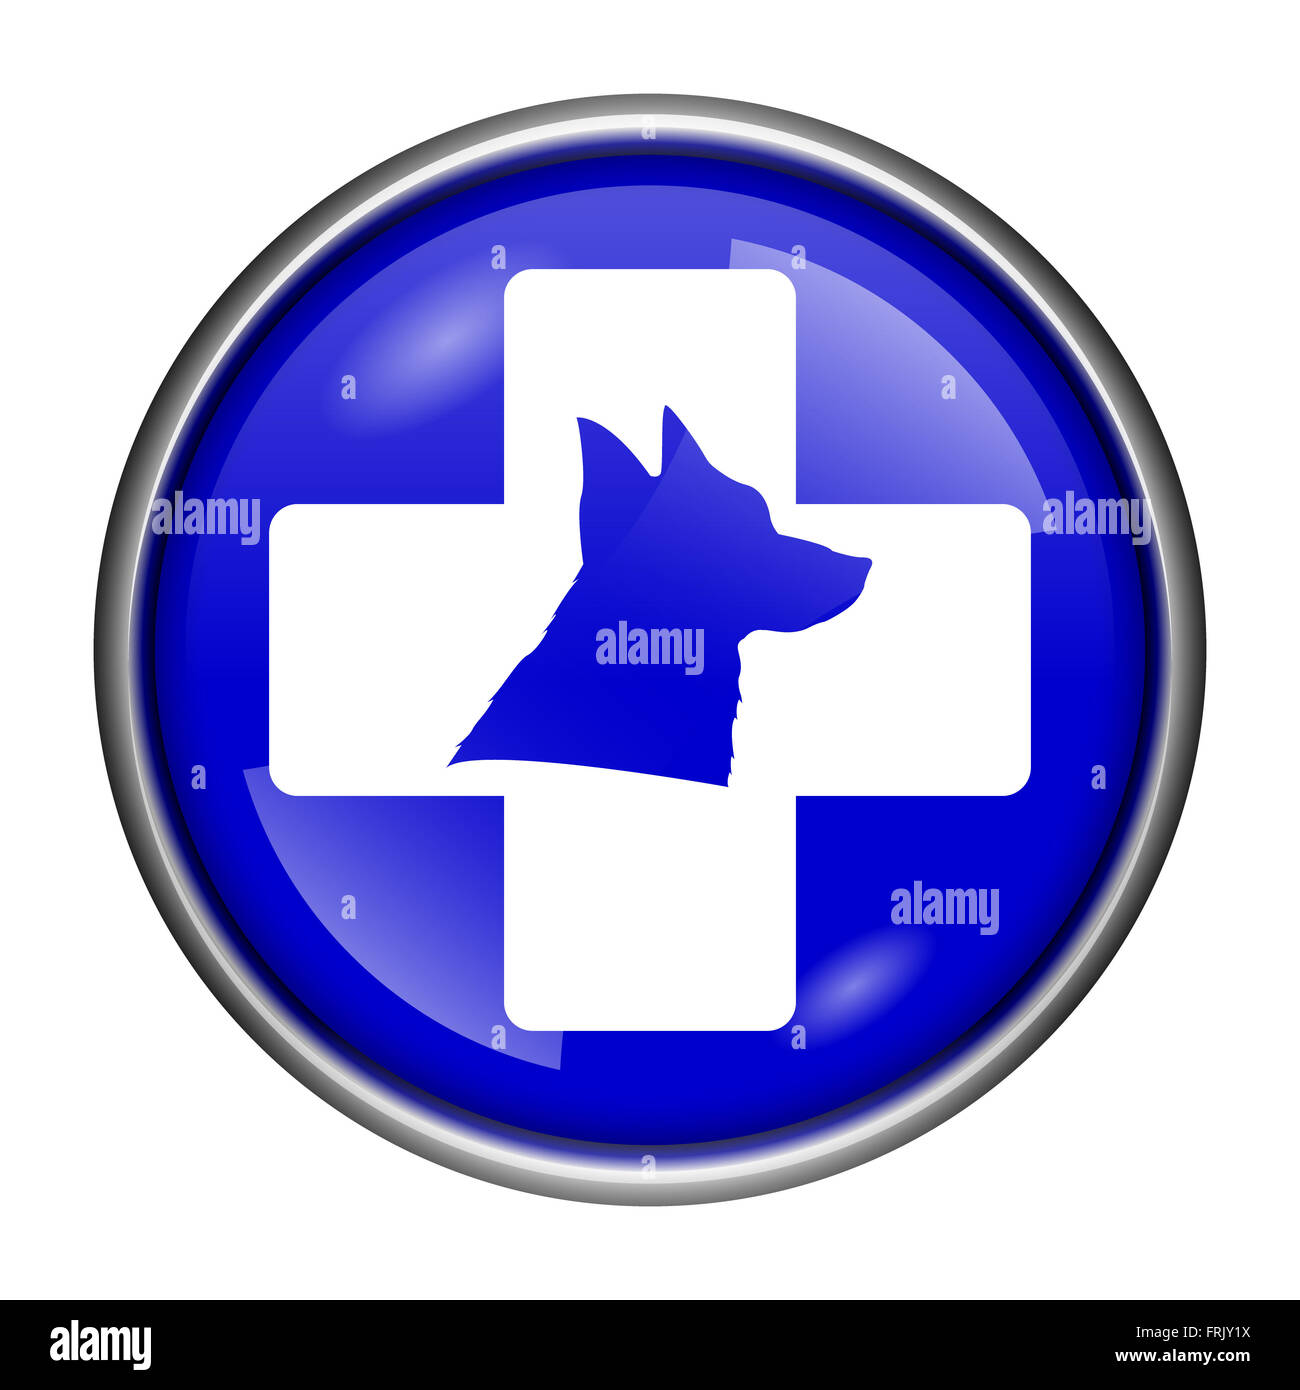 Round glossy icon with white design on blue background - Stock Image